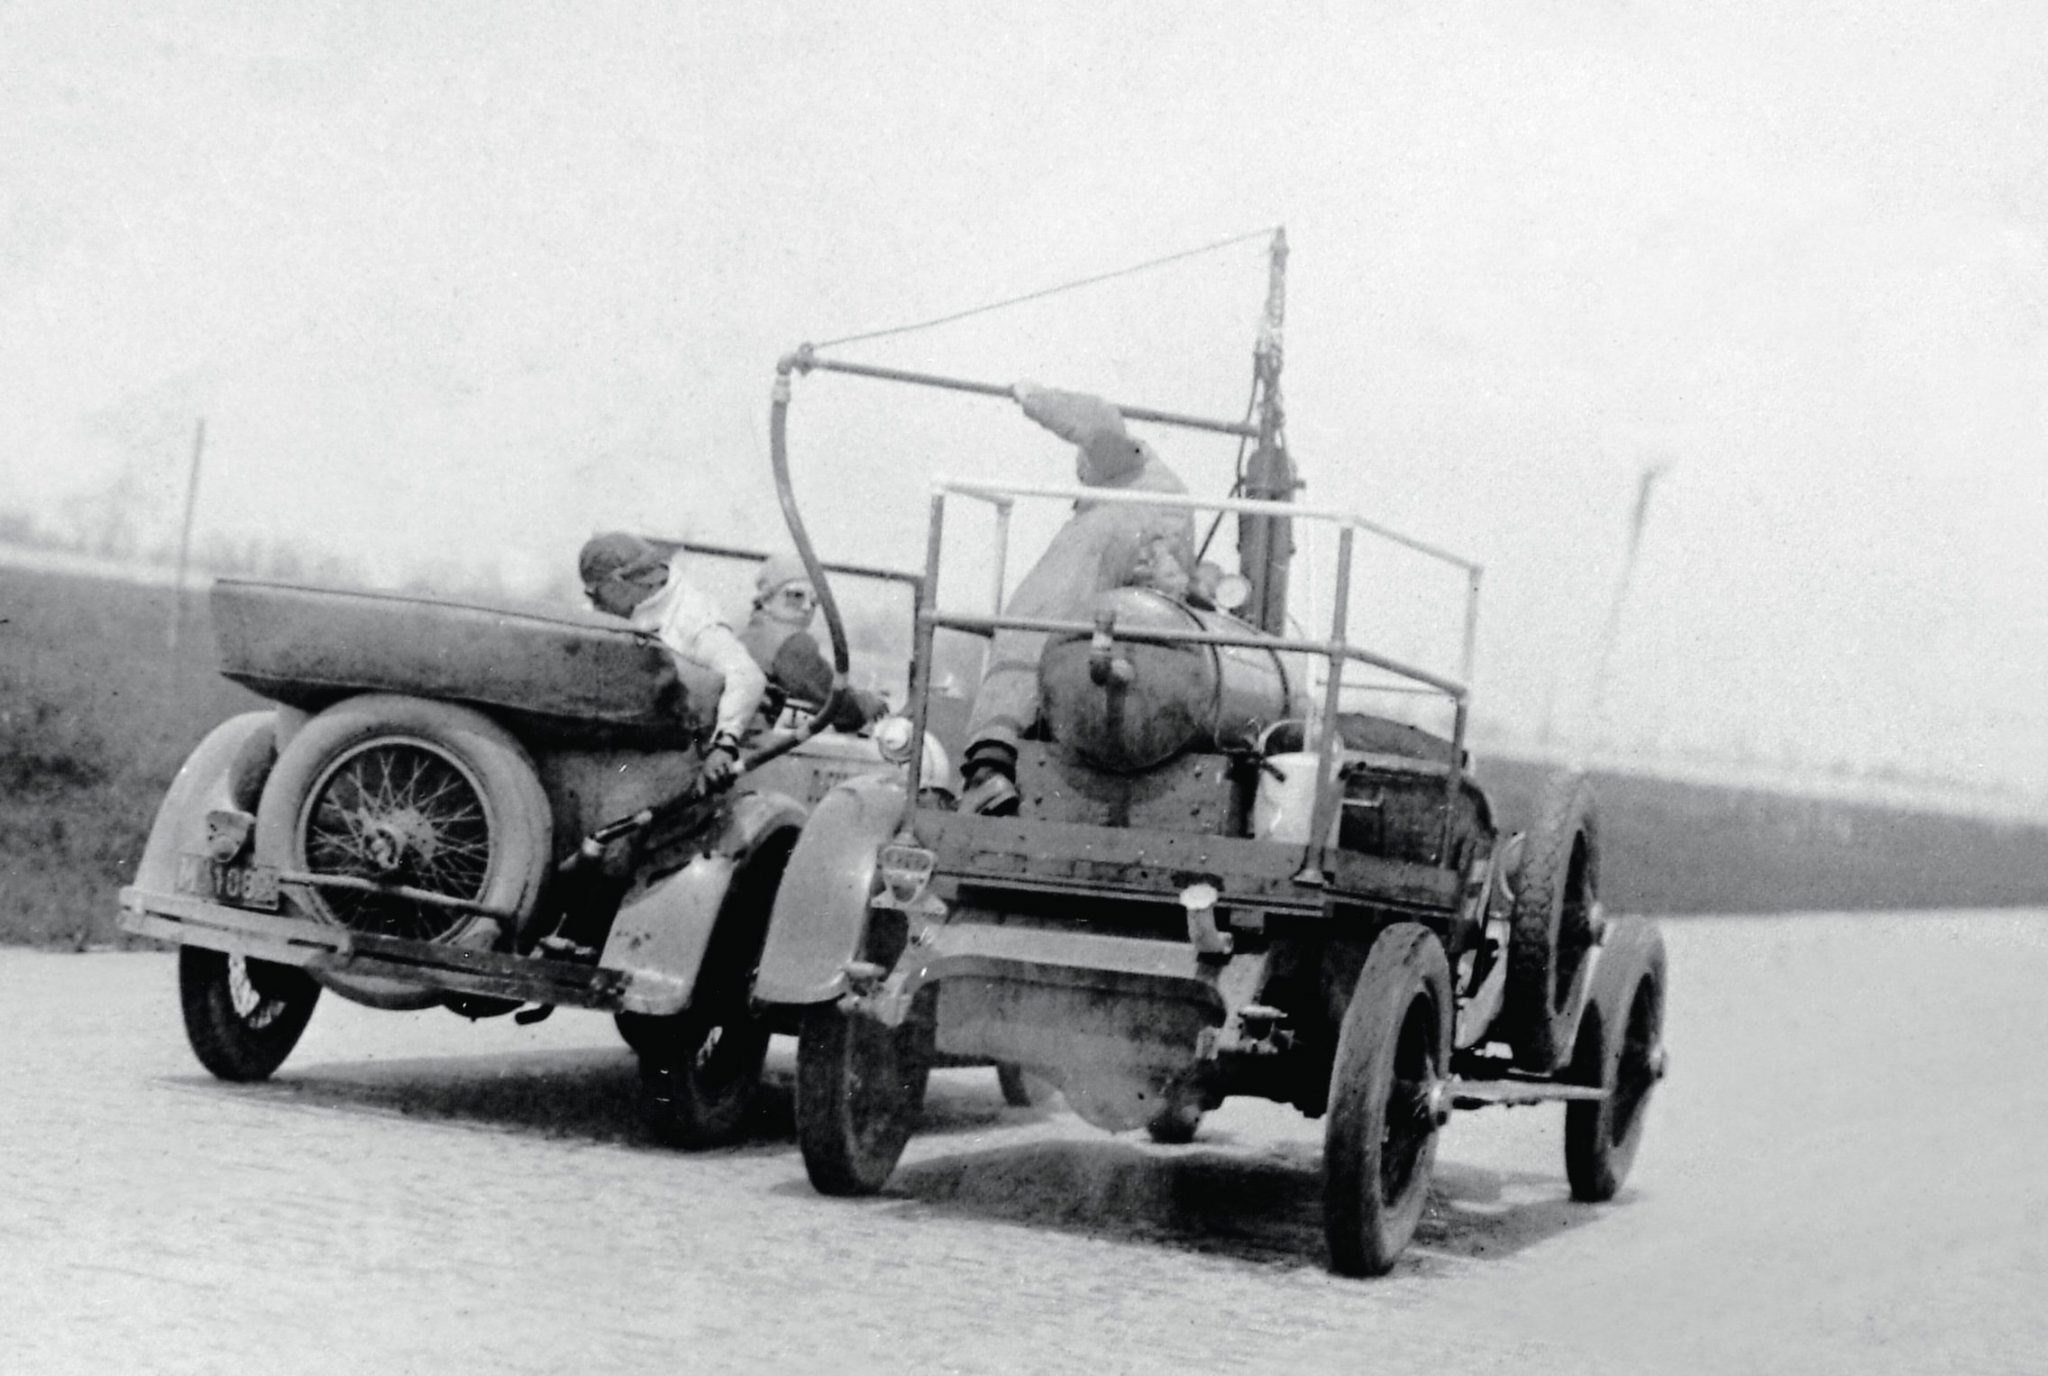 Except to stop for tires and driver changes, the April 1923 endurance tests at the Indianapolis Motor Speedway were non-stop. During this 24-hour record run, the engine was never shut off and the car was refueled in motion from another Model A chassis equipped with a large storage tank. And you thought the Air Force thought this up!